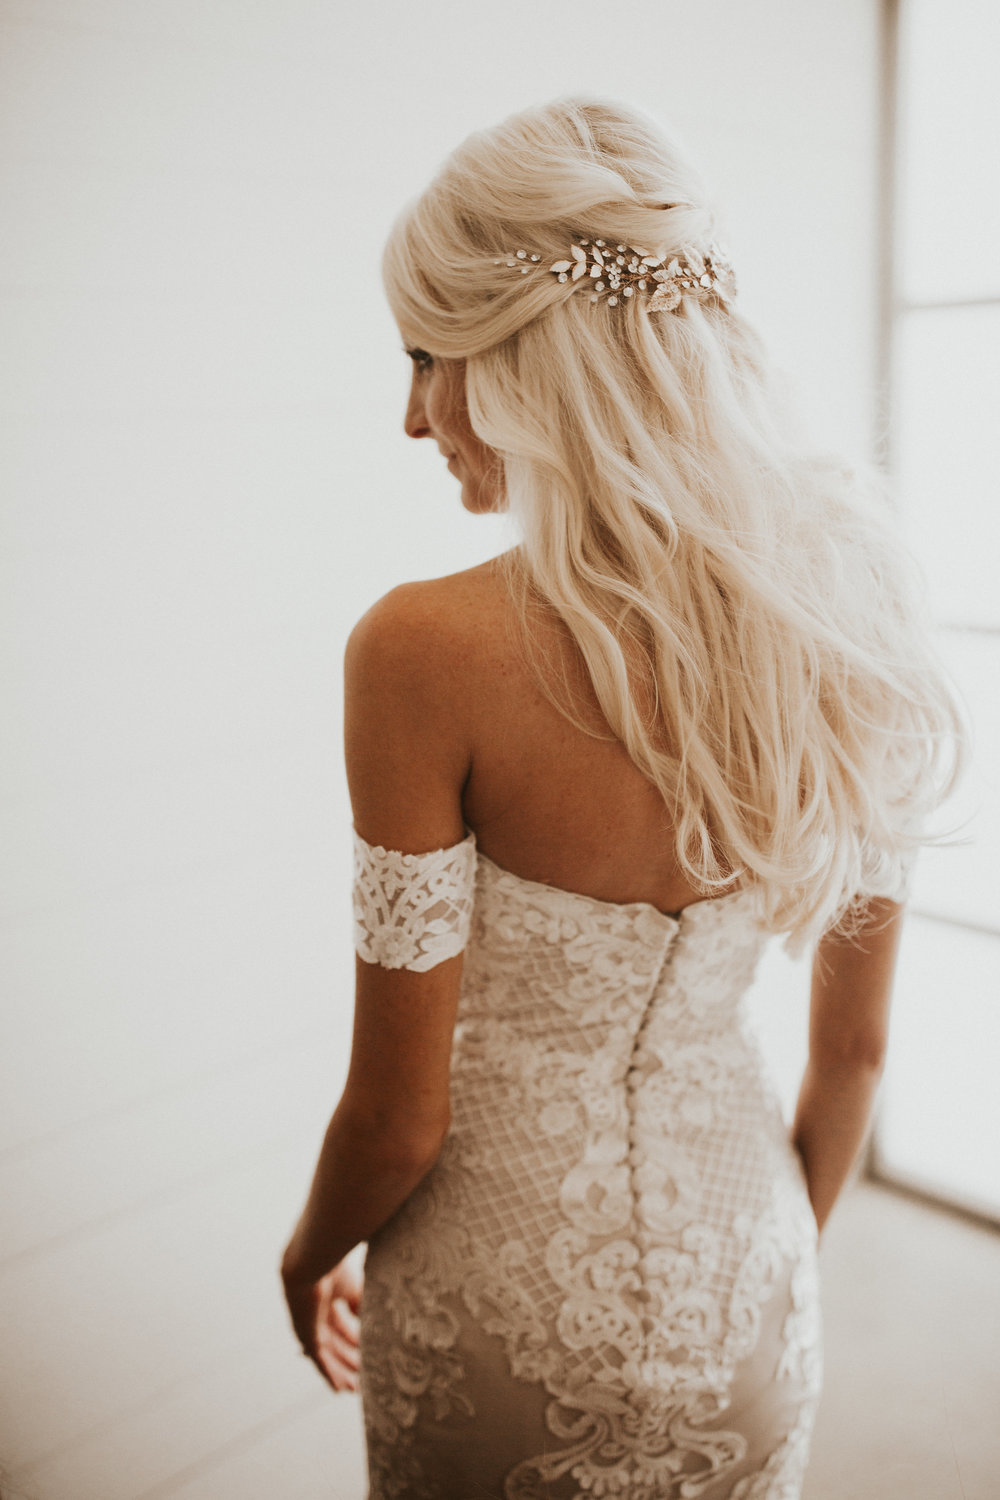 bridal rates & faq - TRAVEL FEE - All on location services will require a $50 travel fee per artist for any locations within Austin. Travel fee will increase based on distance and travel time for any locations outside the local area.HOURLY RATE -Touch-ups are available at a rate of $100/hr and begins at the end of scheduled service(s) time until desired.DEPOSIT + PAYMENT -To reserve bridal services on your wedding day a (refundable) deposit of $250 is required. Final payment will be invoiced and due 30 days before event. Any changes or additions day-of will be charged at the end of each service.